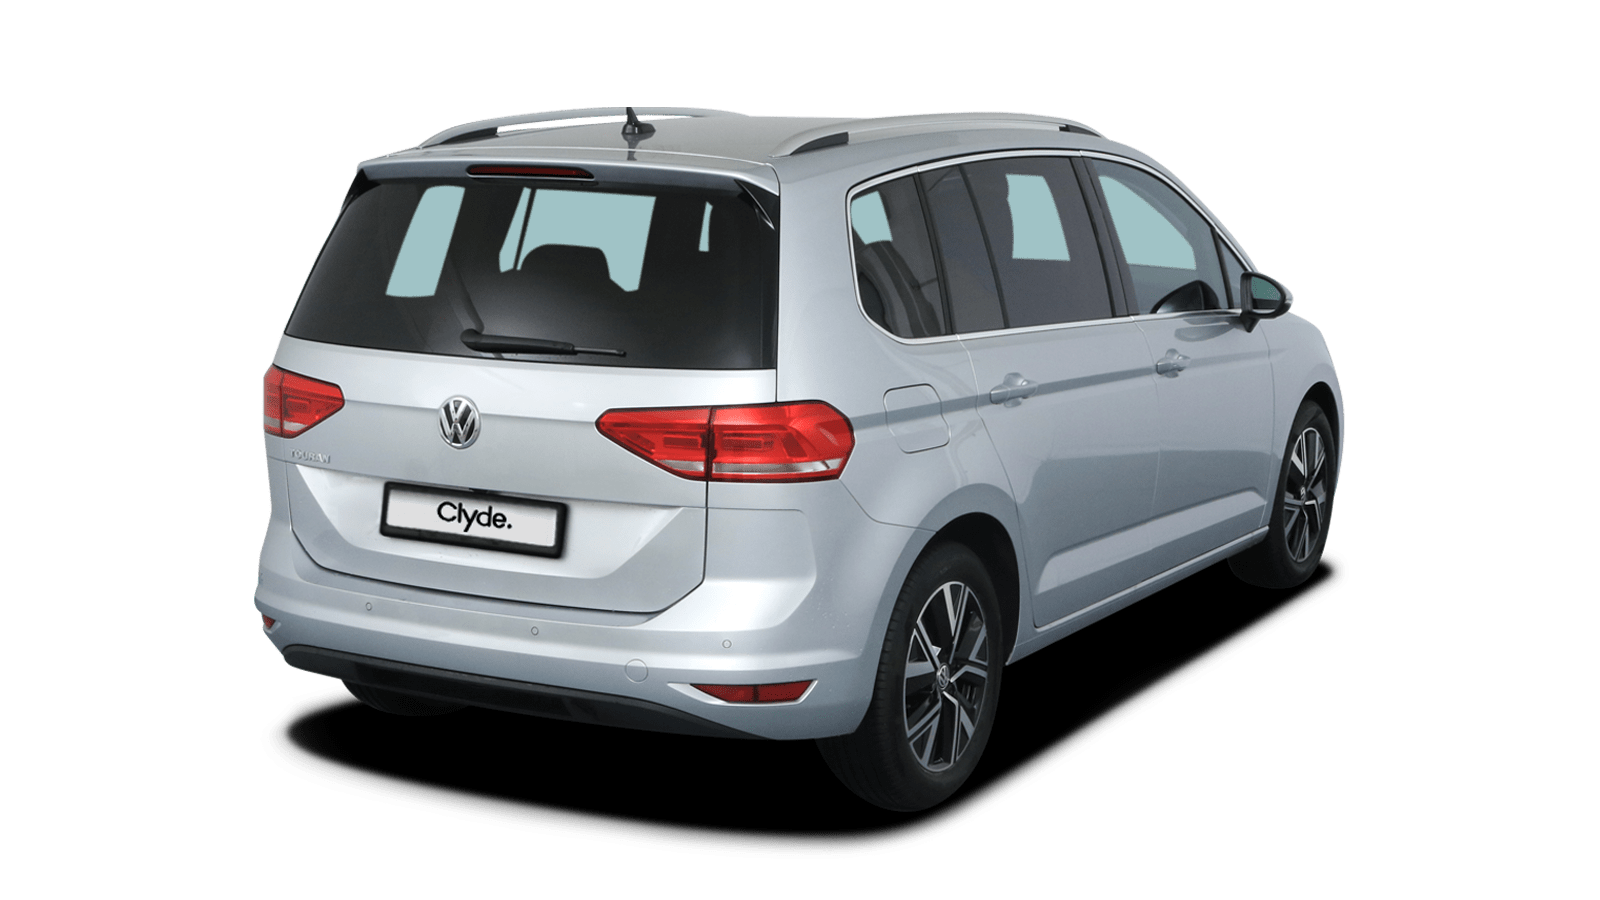 VW Touran Silver front - Clyde car subscription